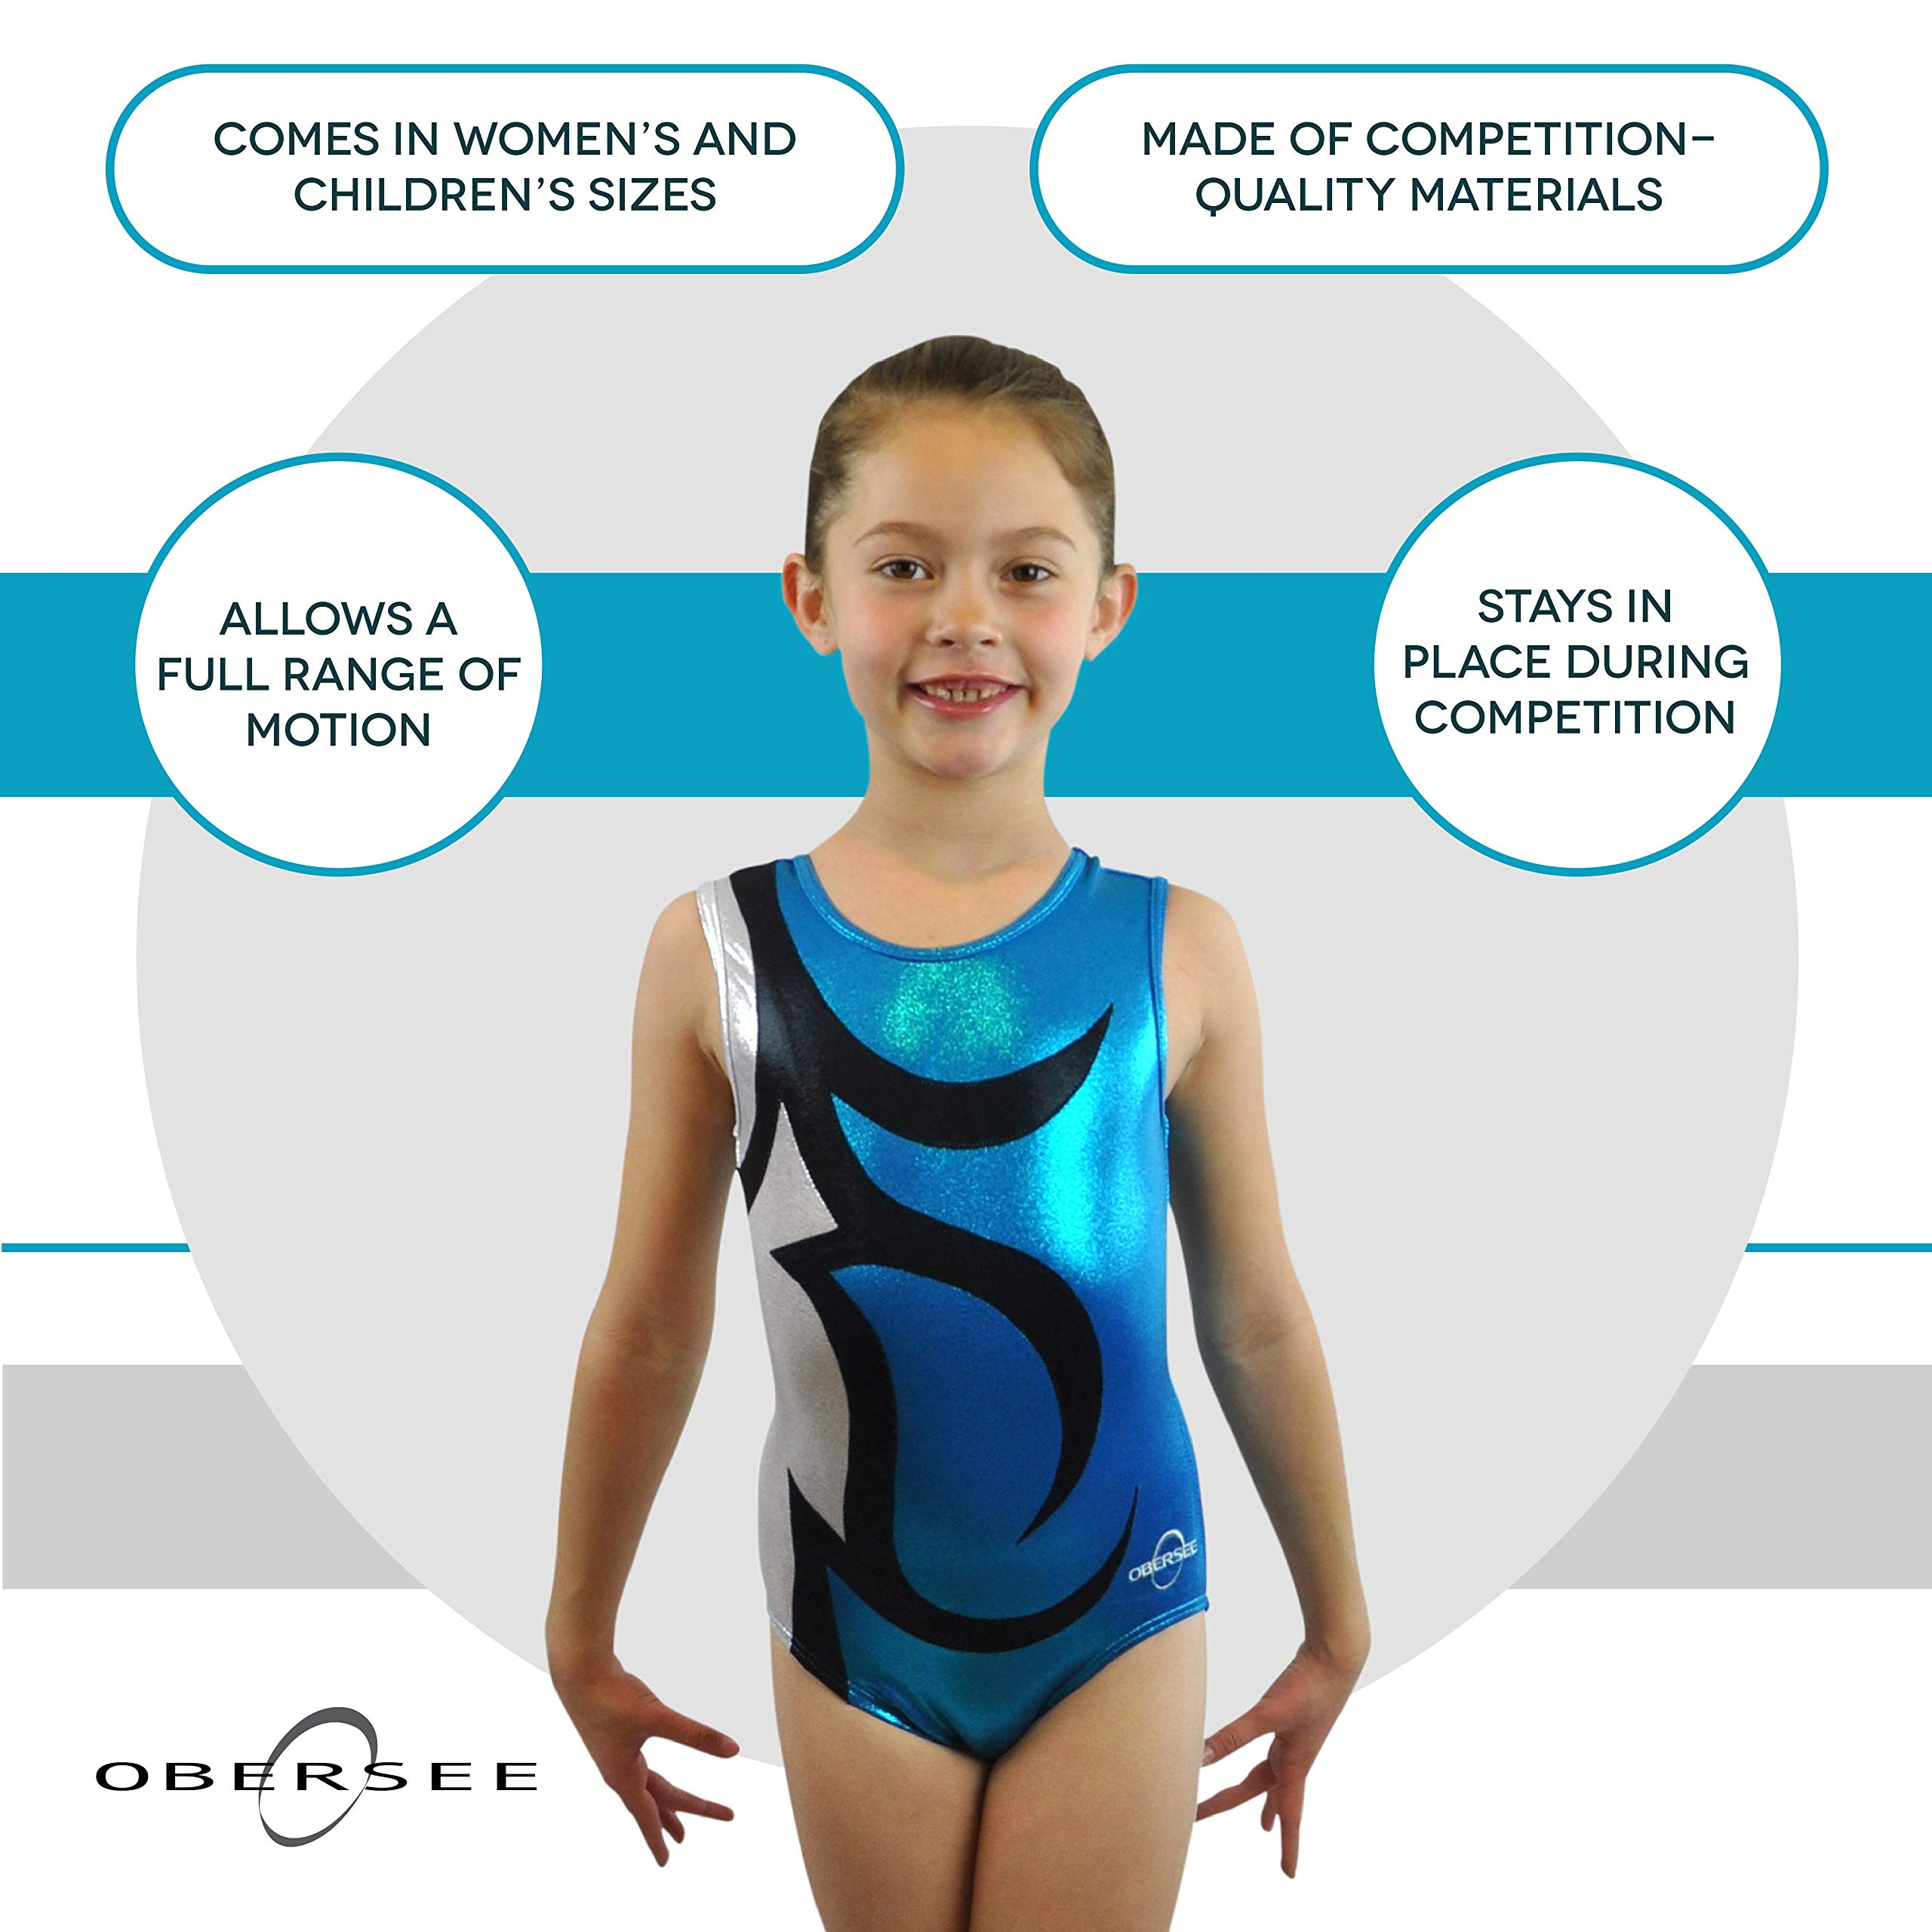 Obersee Girl's Girls Gymnastics Leotard, Abby Turquoise, AS by Obersee